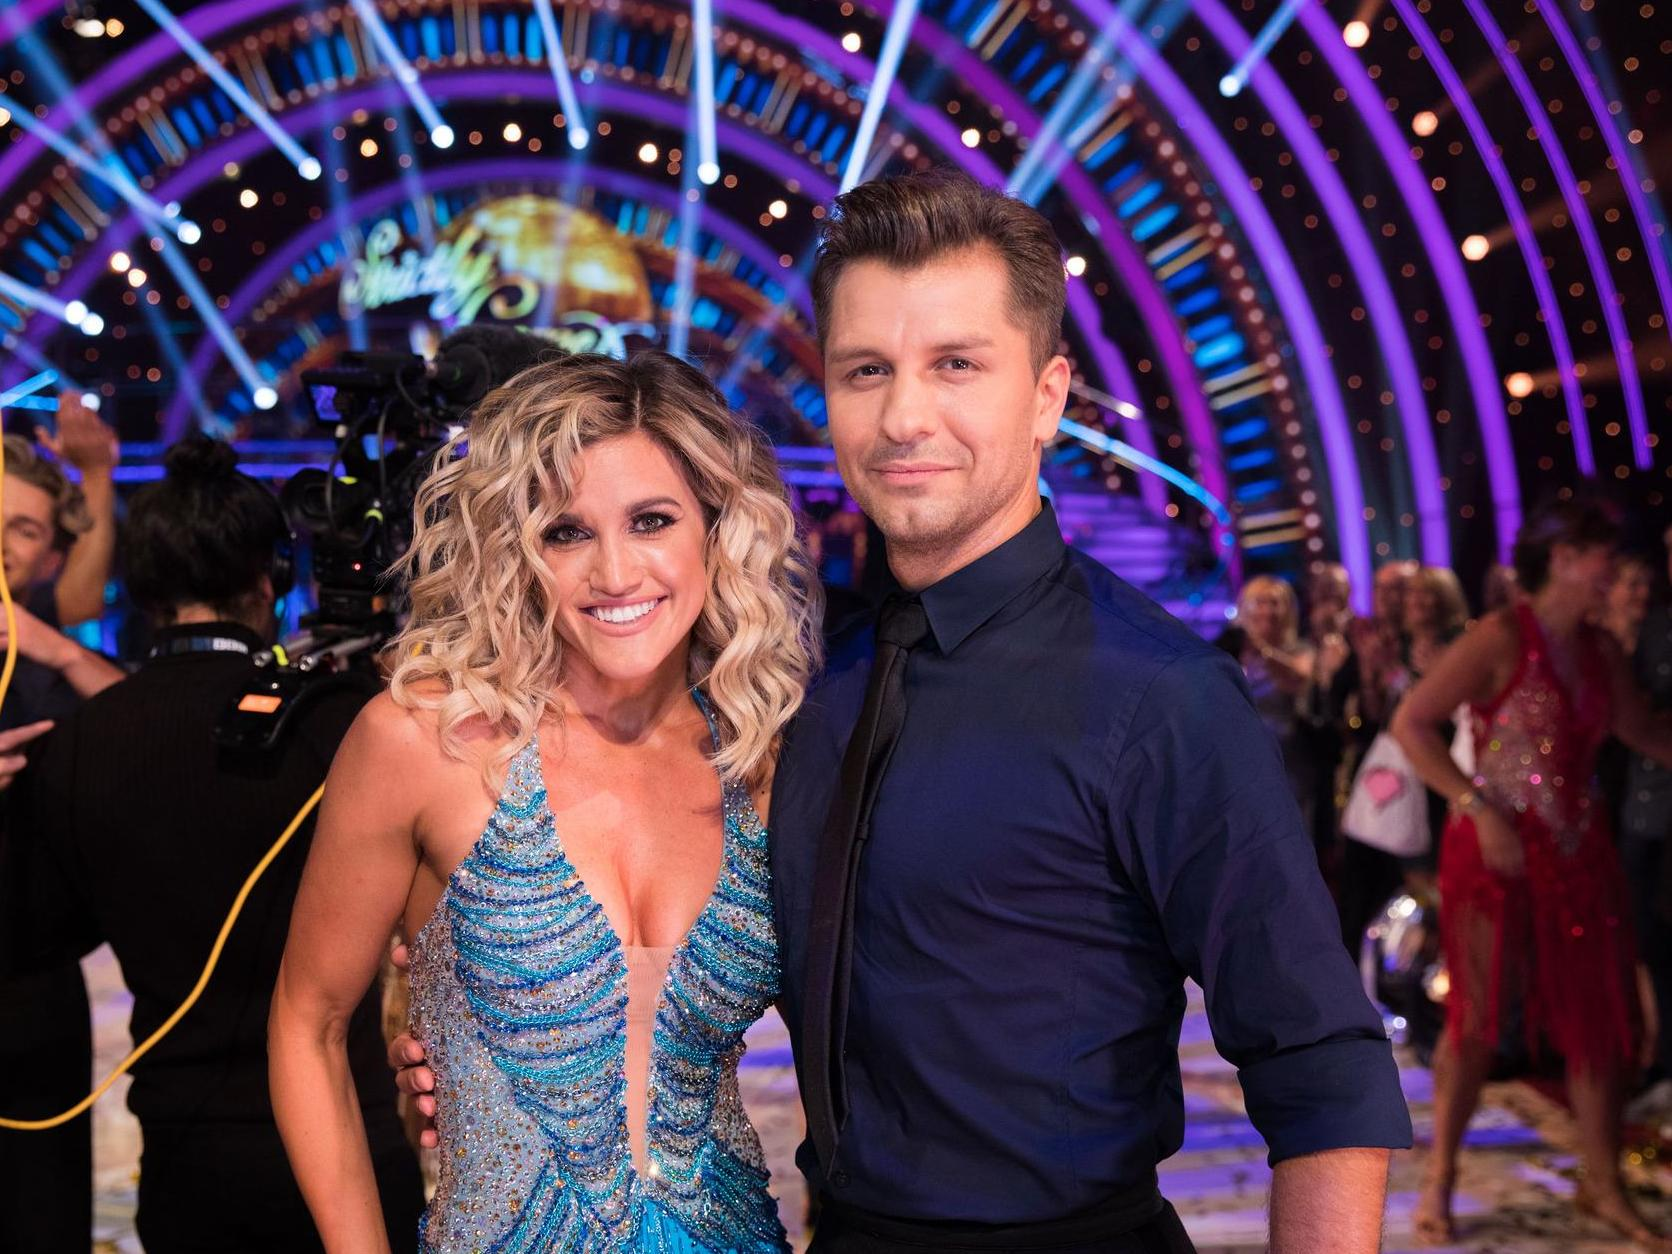 Strictly Come Dancing star Pasha Kovalev 'robbed by thugs' in moped attack outside theatre